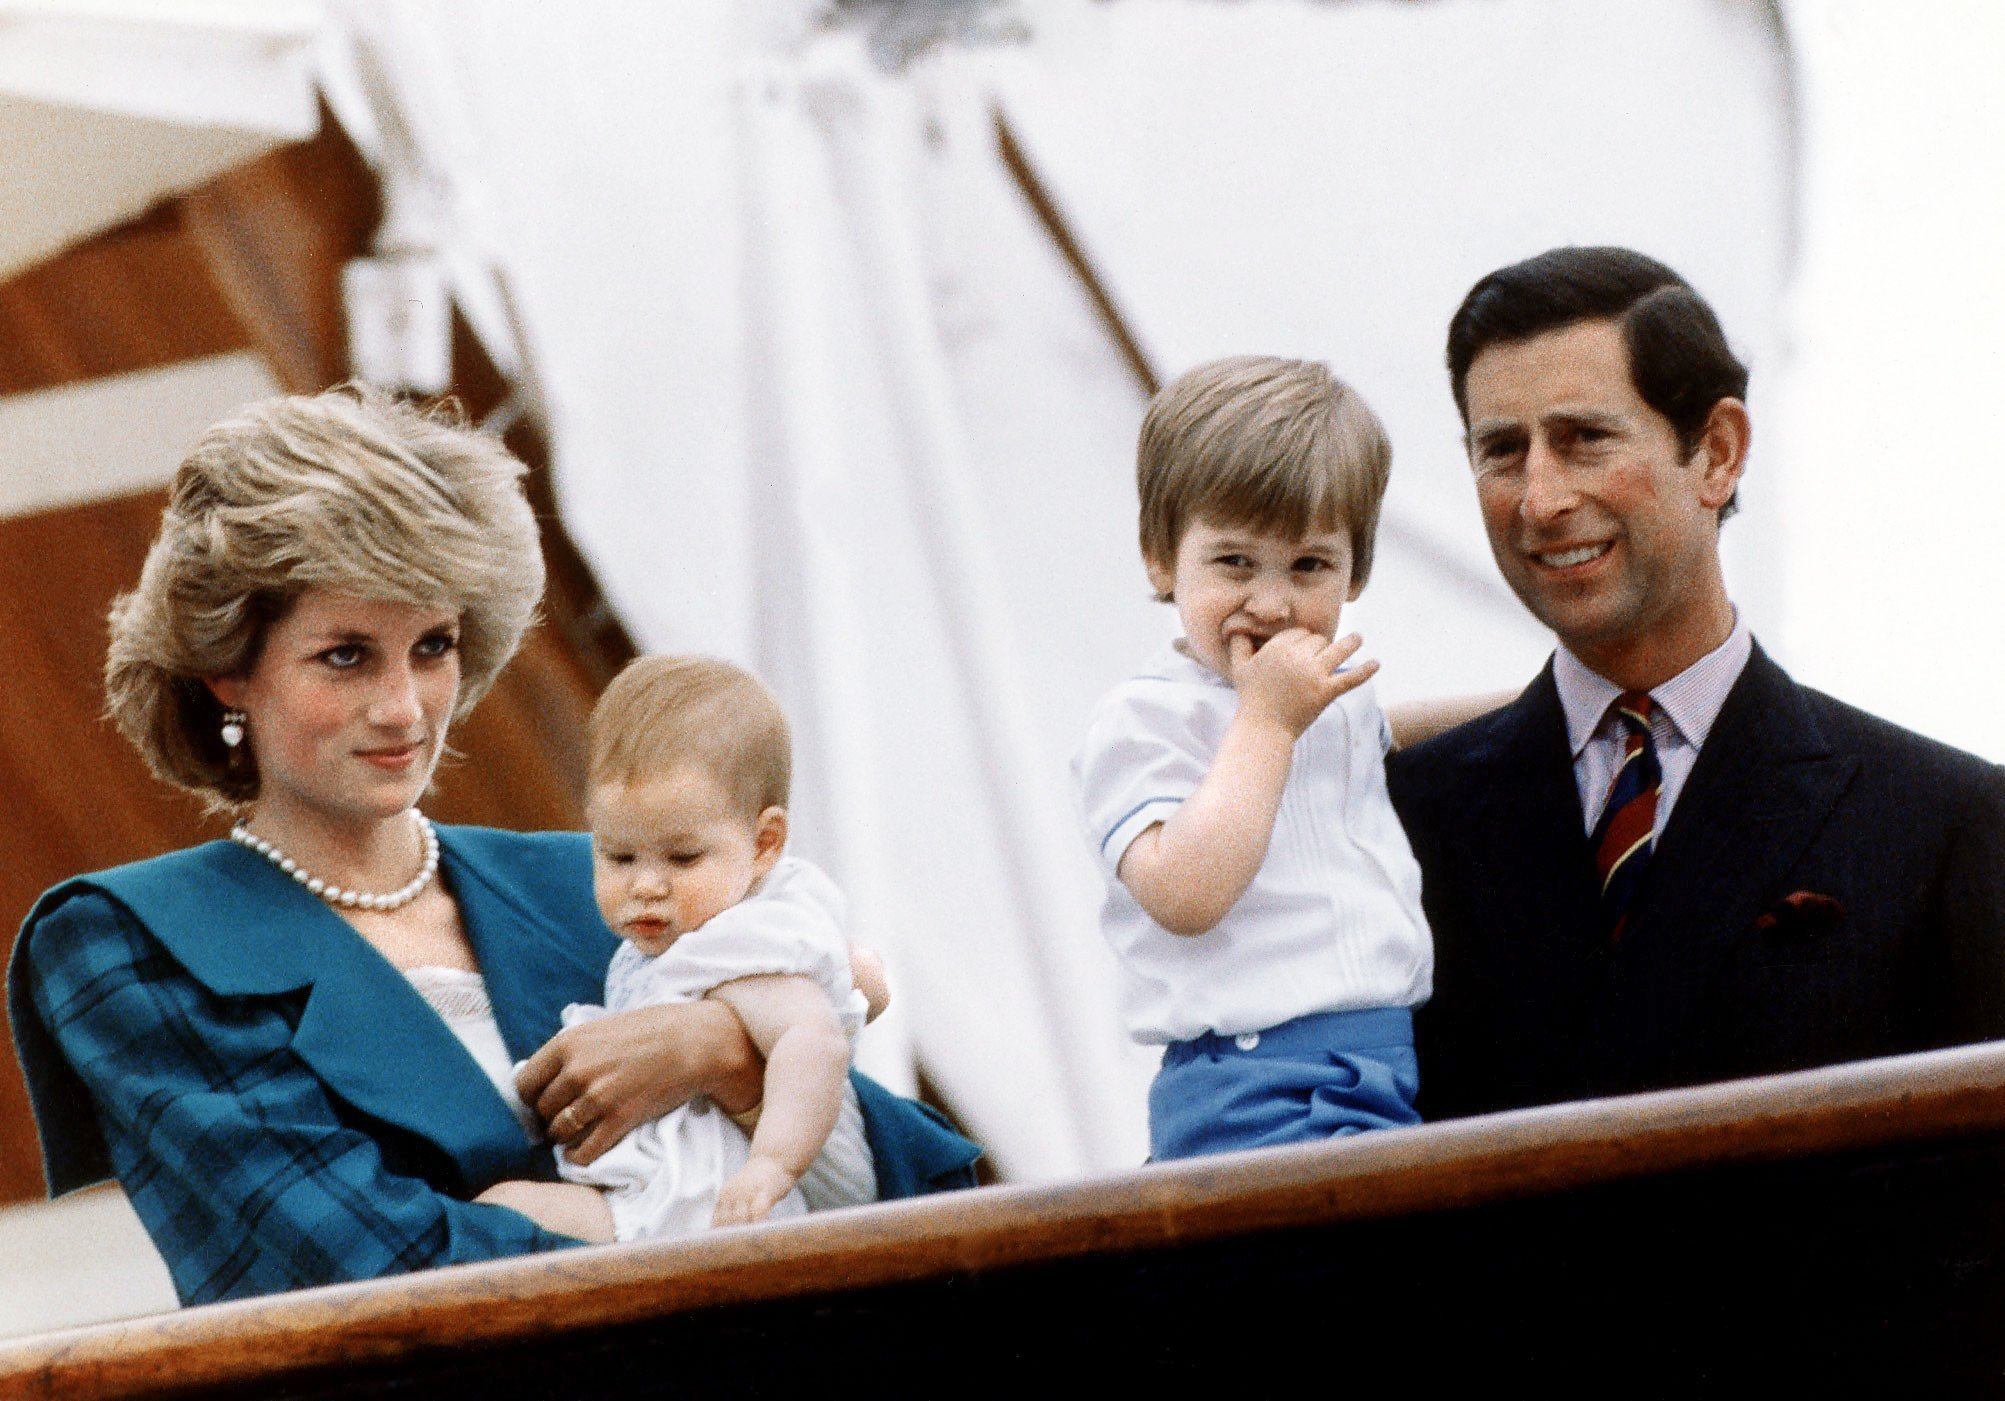 Princess Diana and Prince Charles pose with their sons Princes Harry and William on board royal yacht Britannia during their visit to Venice, Italy, 6th May 1985   Photo:  Getty Images